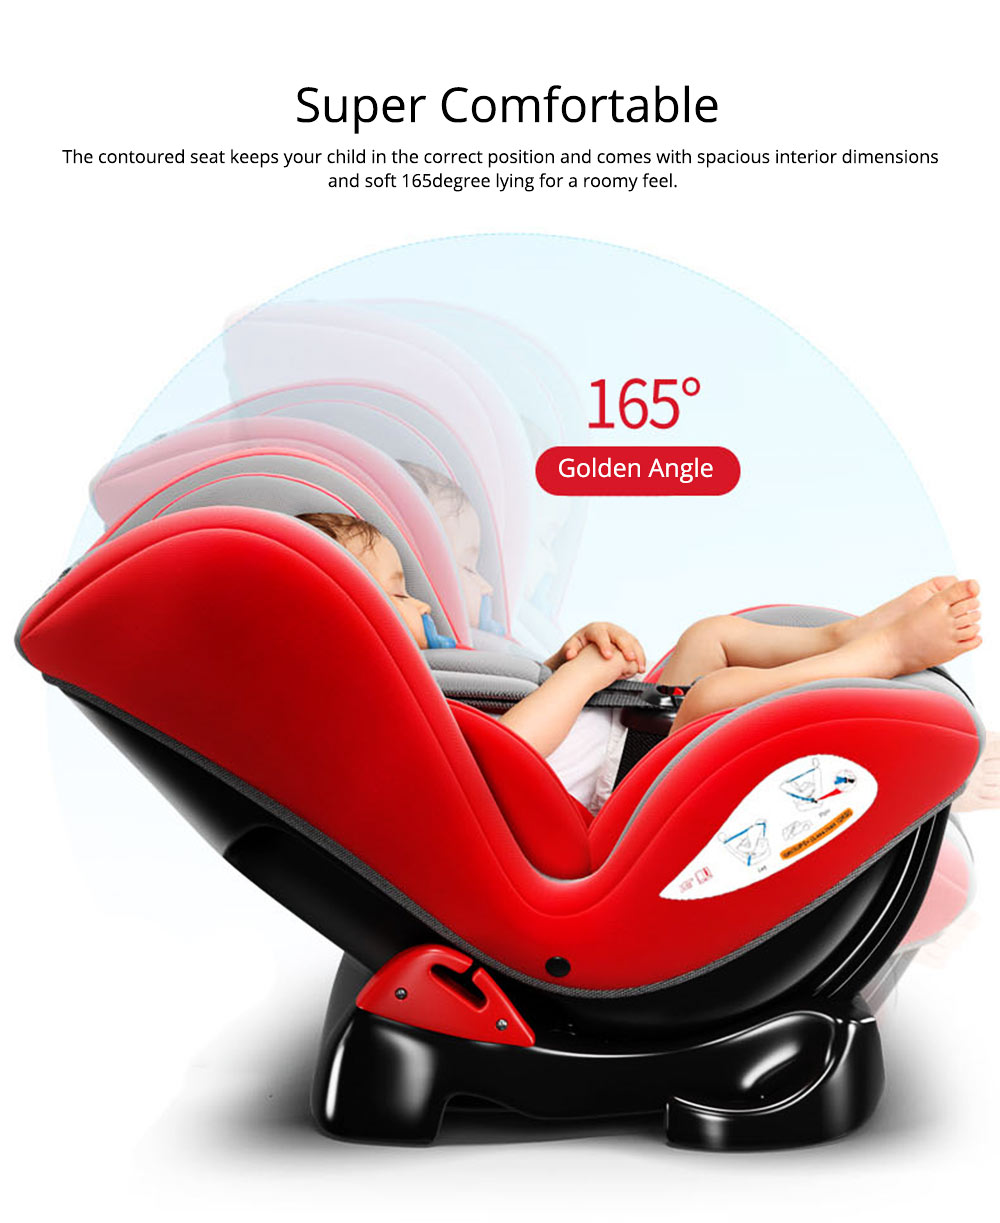 Children's Booster Seat Large Auto Car Seat Protectors for Child, Baby Safety Seat Thick Padding Car Seat 4